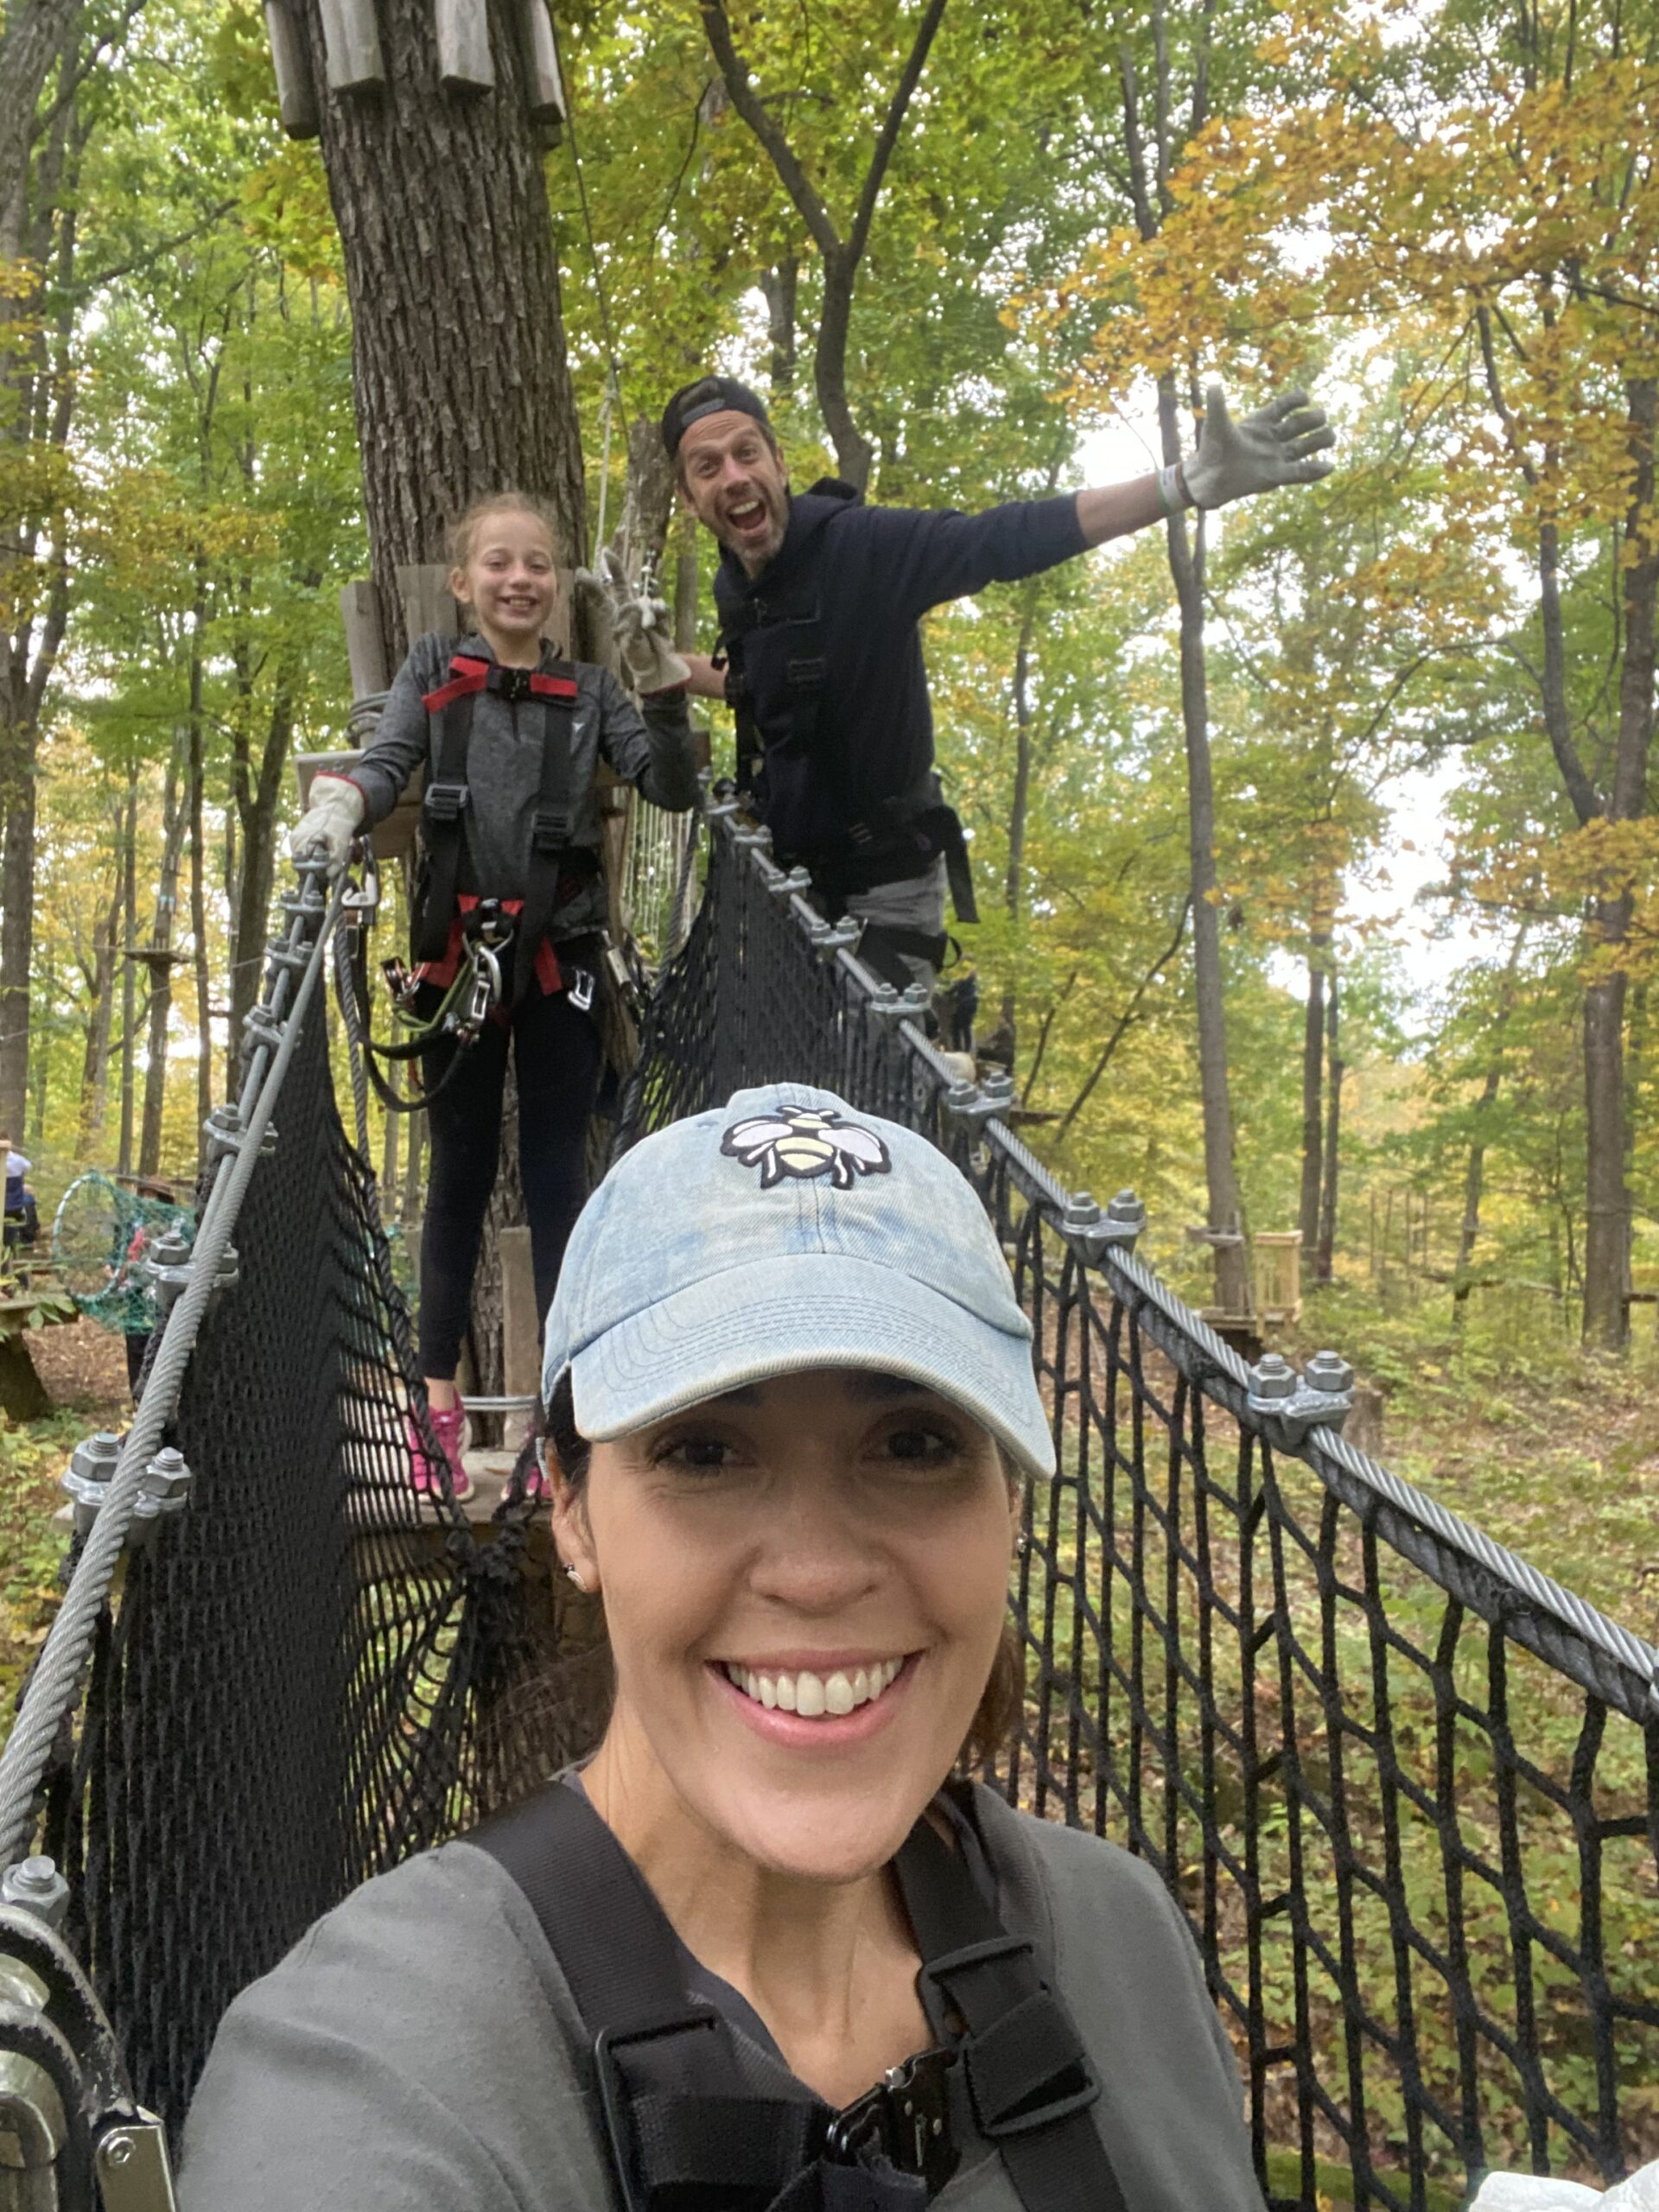 Adventure Awaits at the TreEscape Aerial Adventure Park